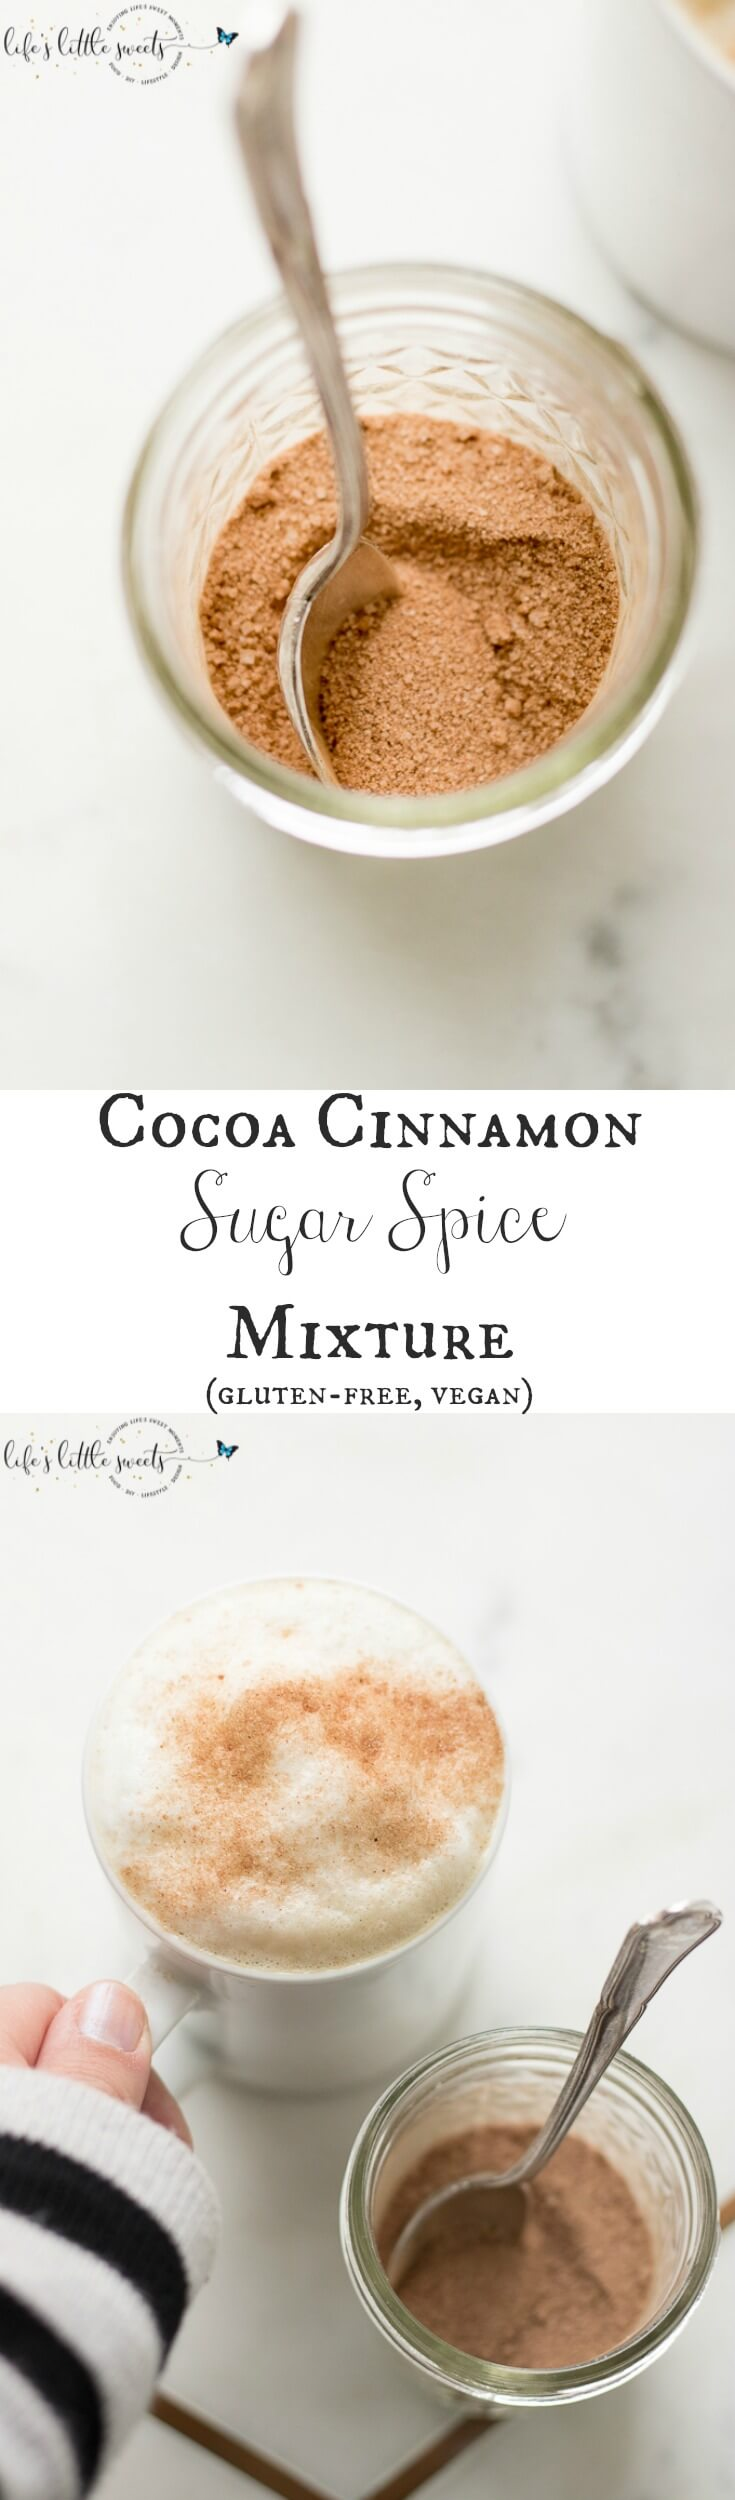 Cocoa Cinnamon Sugar Spice Mixture is the perfect topping for coffee drinks, ice cream or whipped cream. (vegan, gluten-free) #cinnamon #sugar #spice #mixture #cocoa